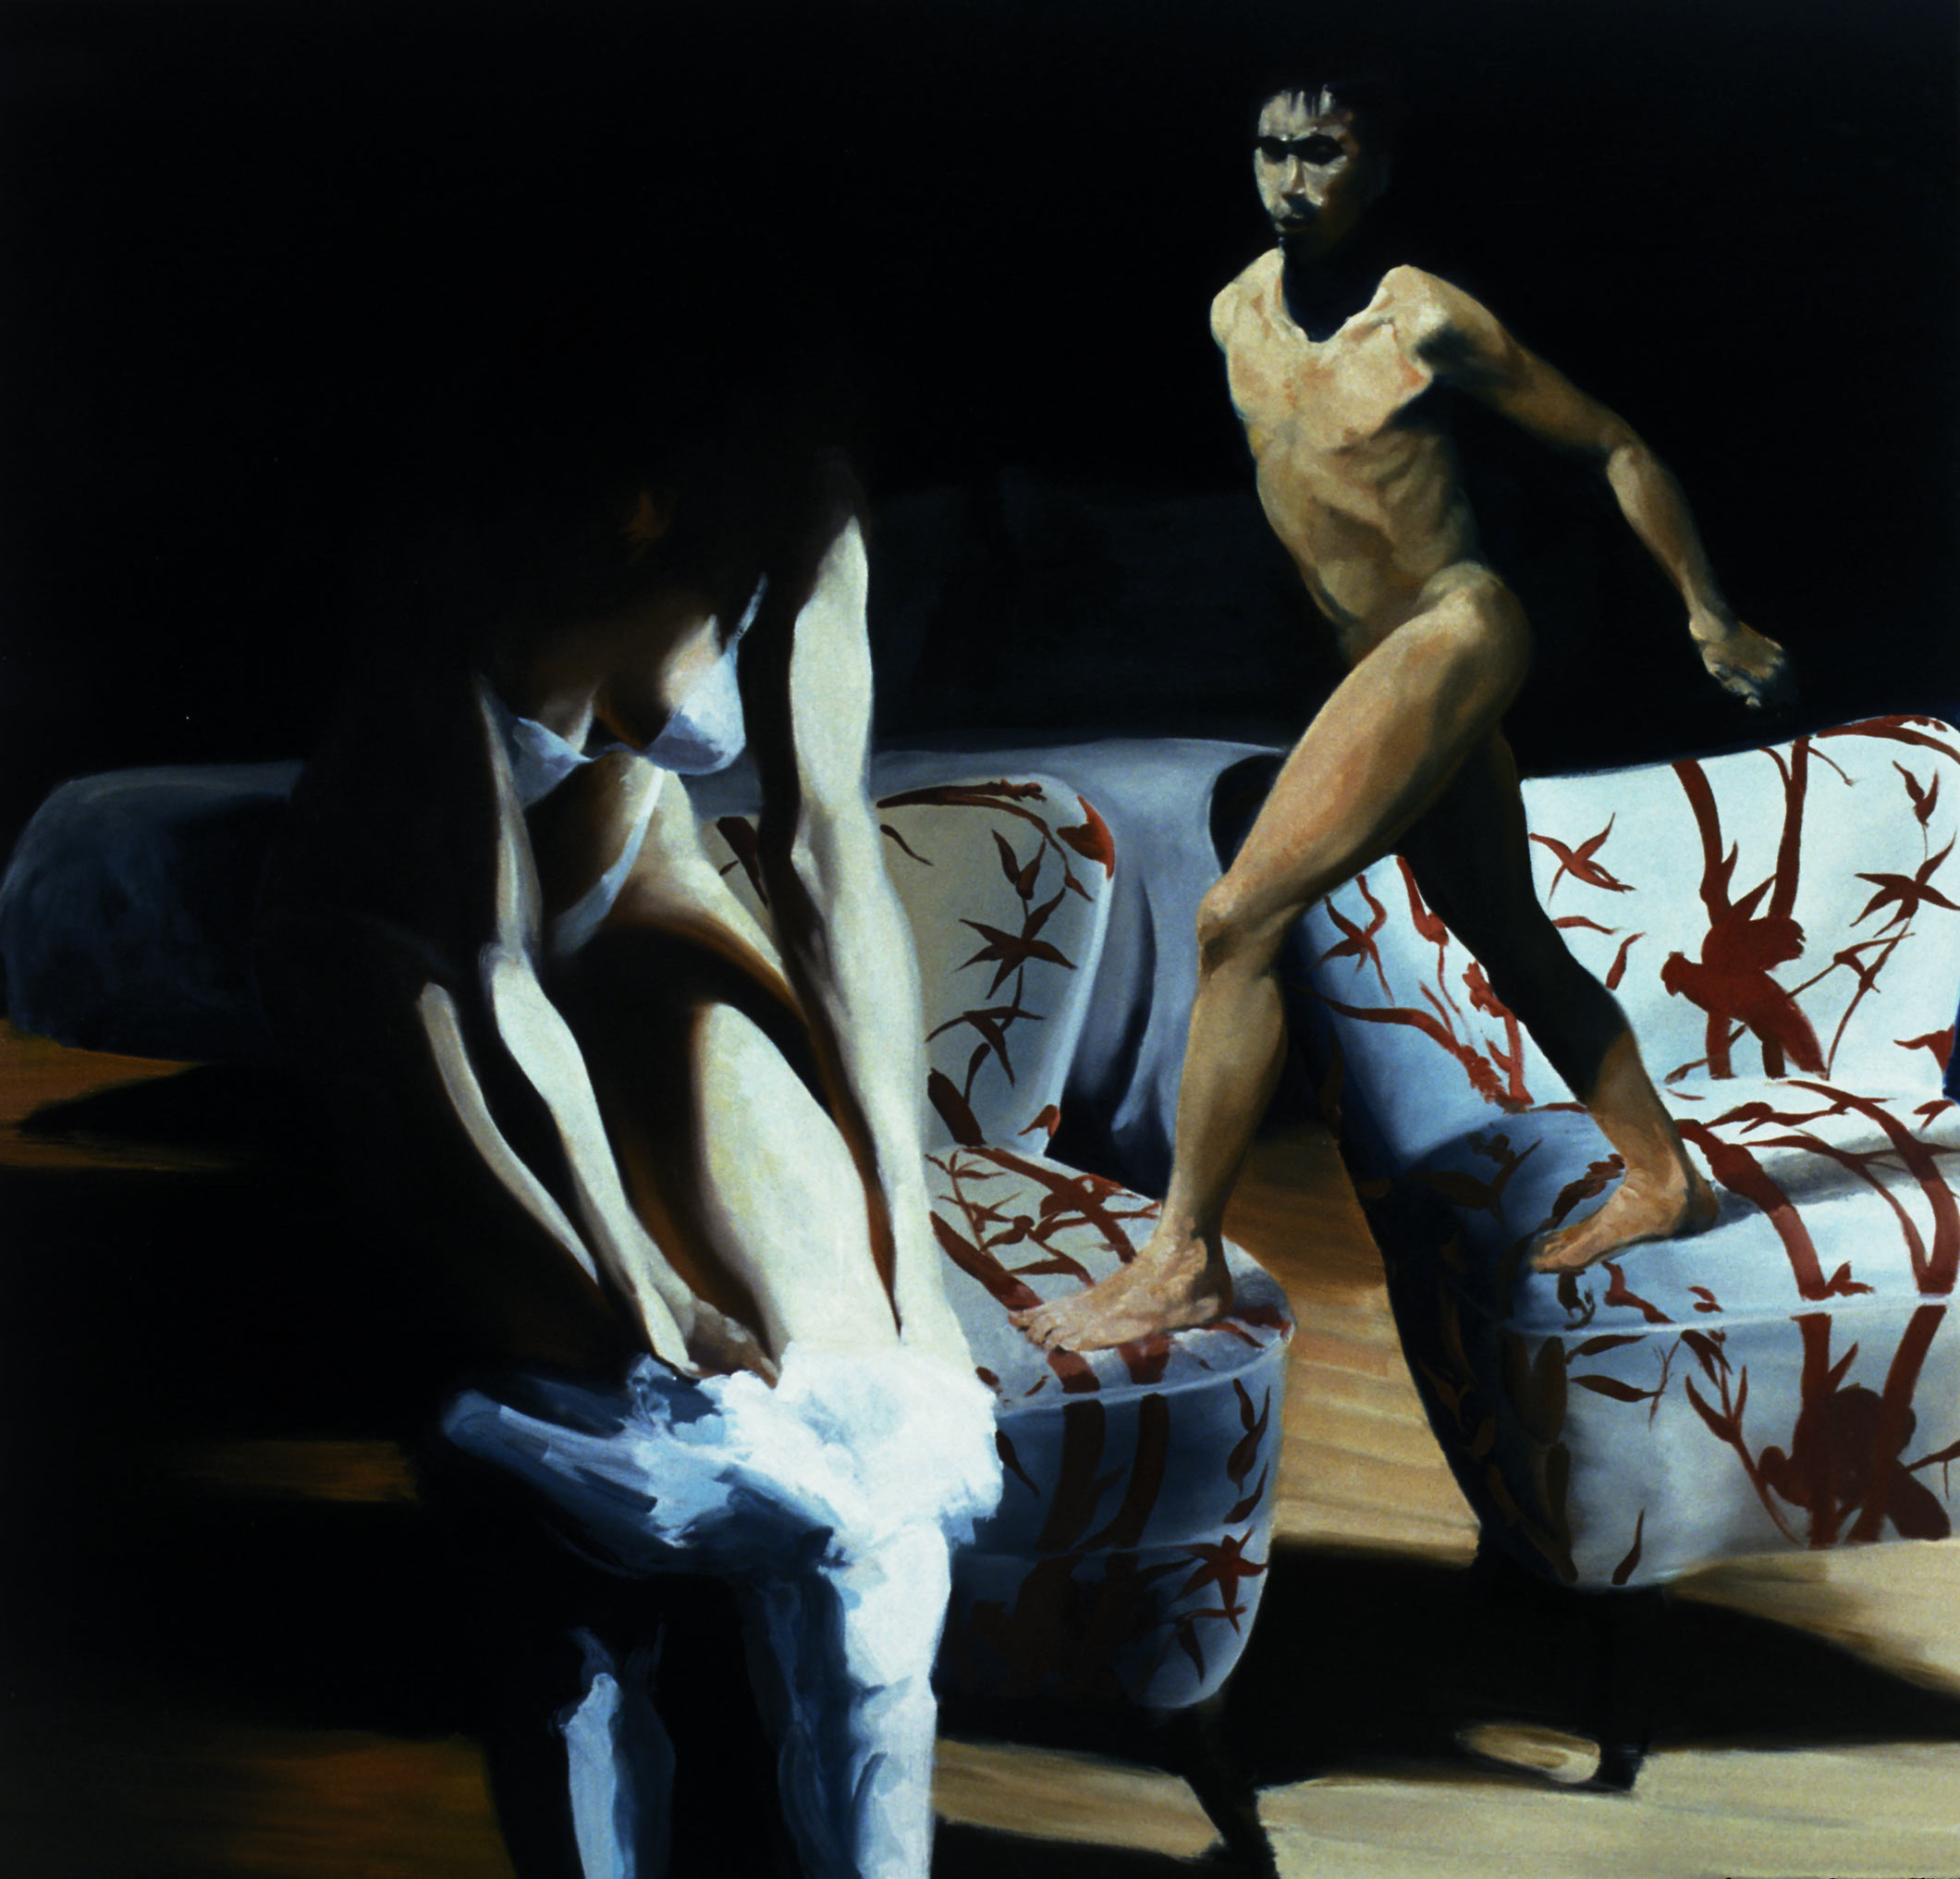 The Bed, The Chair, Changing, 2000. Oil on linen. 98 1/4 x 103 in. (250 x 262 cm.)